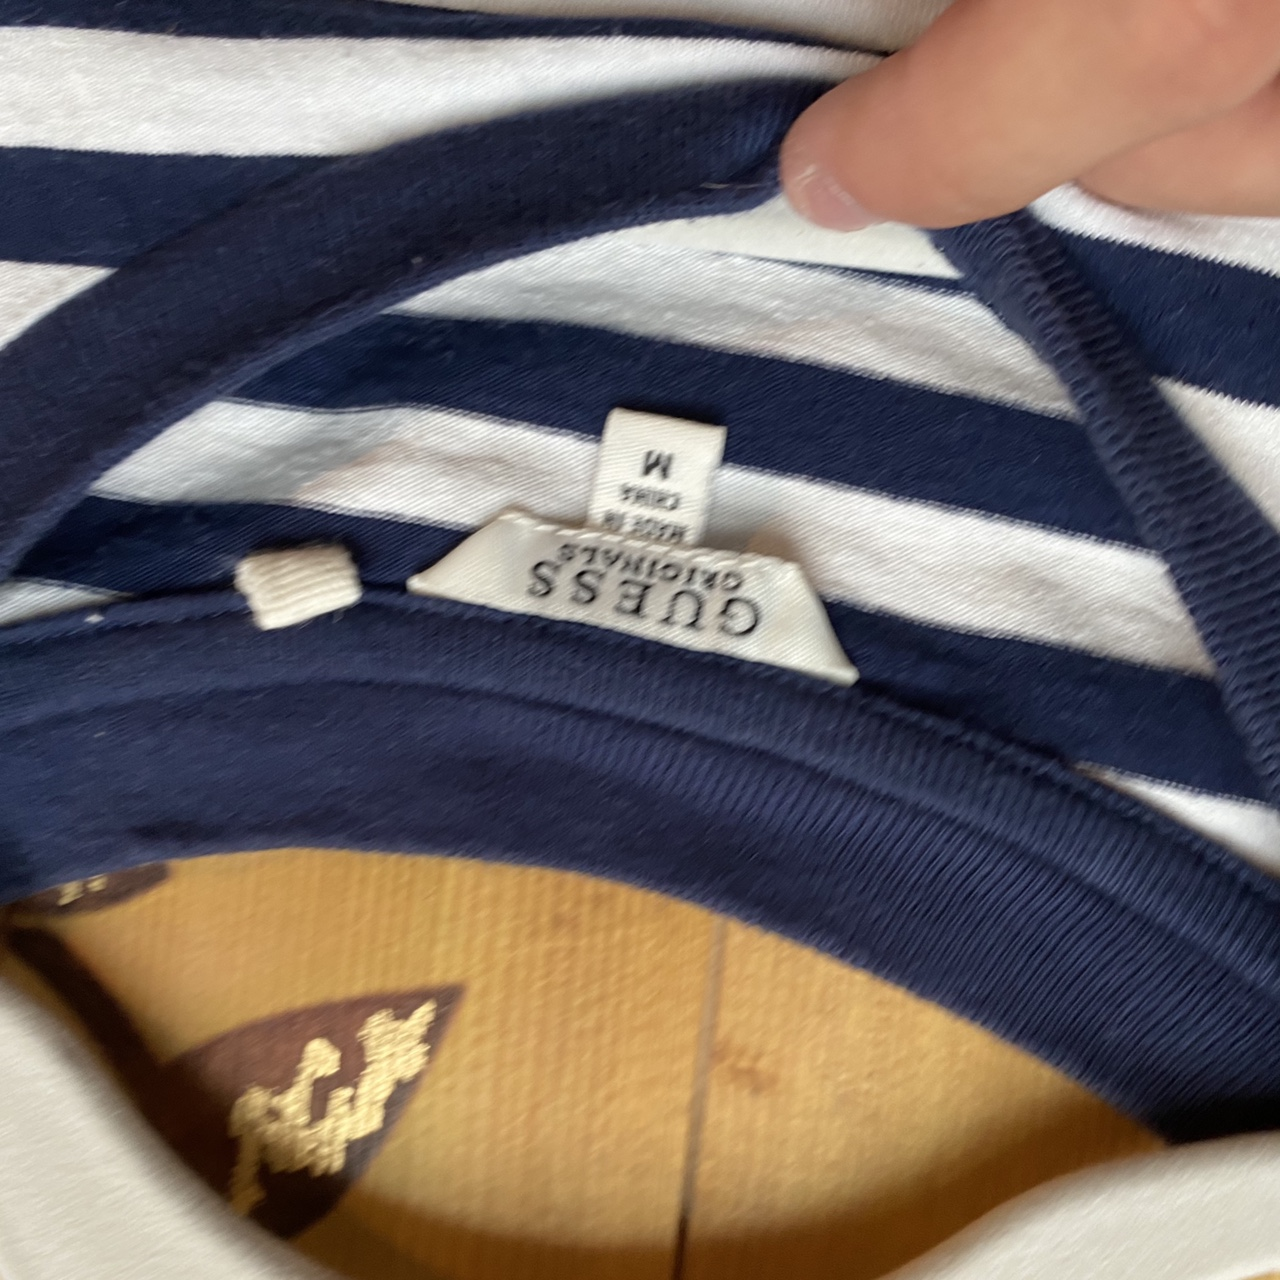 Product Image 3 - Guess ASAP rocky striped shirt